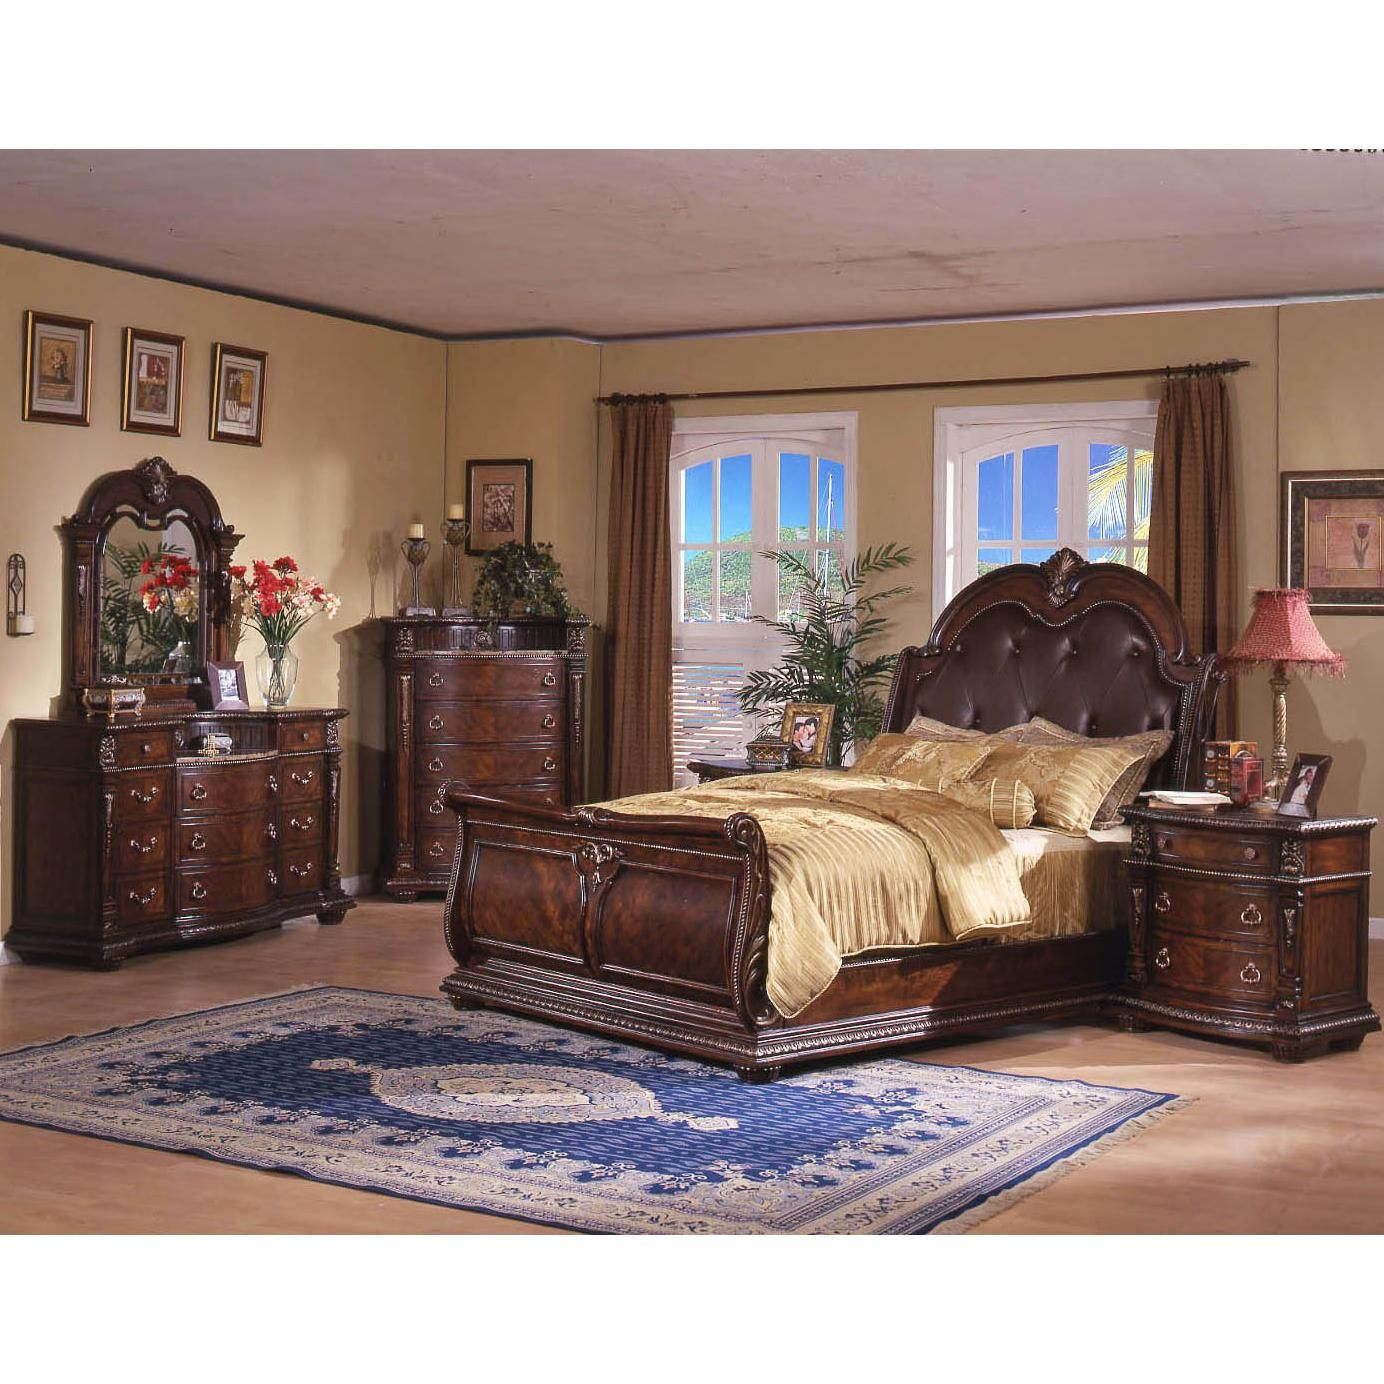 Shop Furniture Direct: Davis International Conventry II Traditional King Sleigh